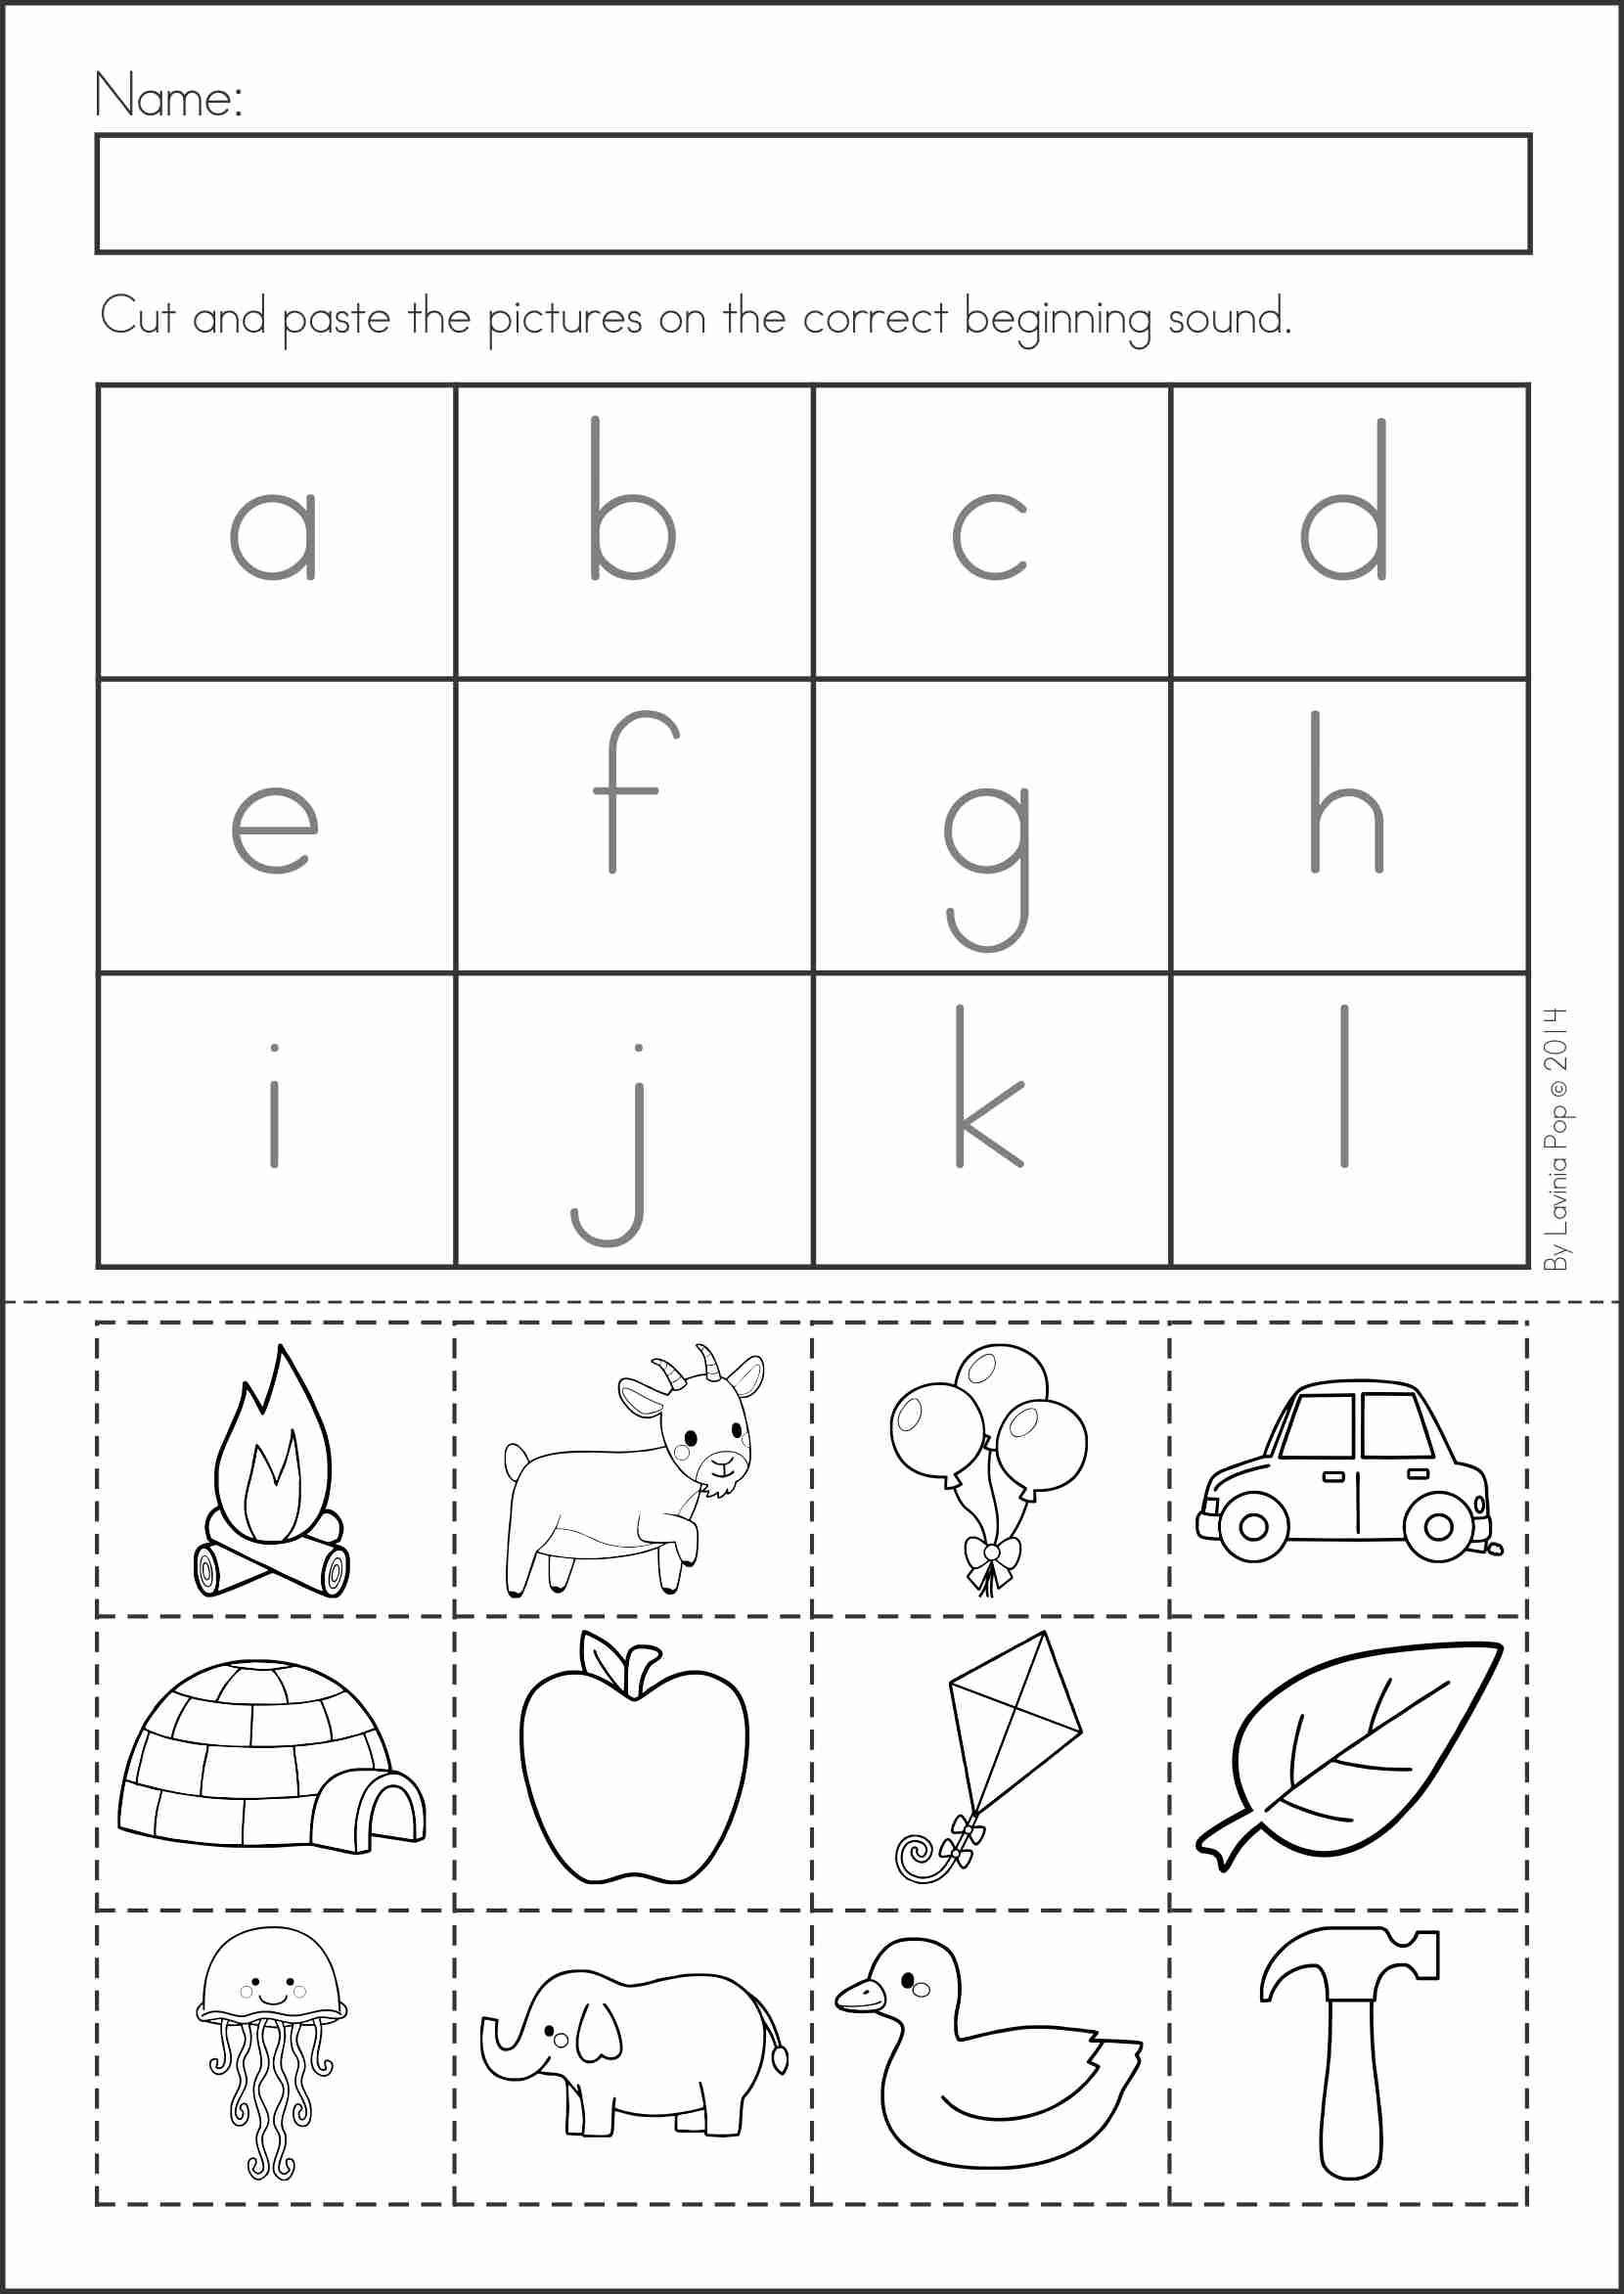 Printable Cutting Worksheets for Preschoolers Summer Review Kindergarten Math & Literacy Worksheets